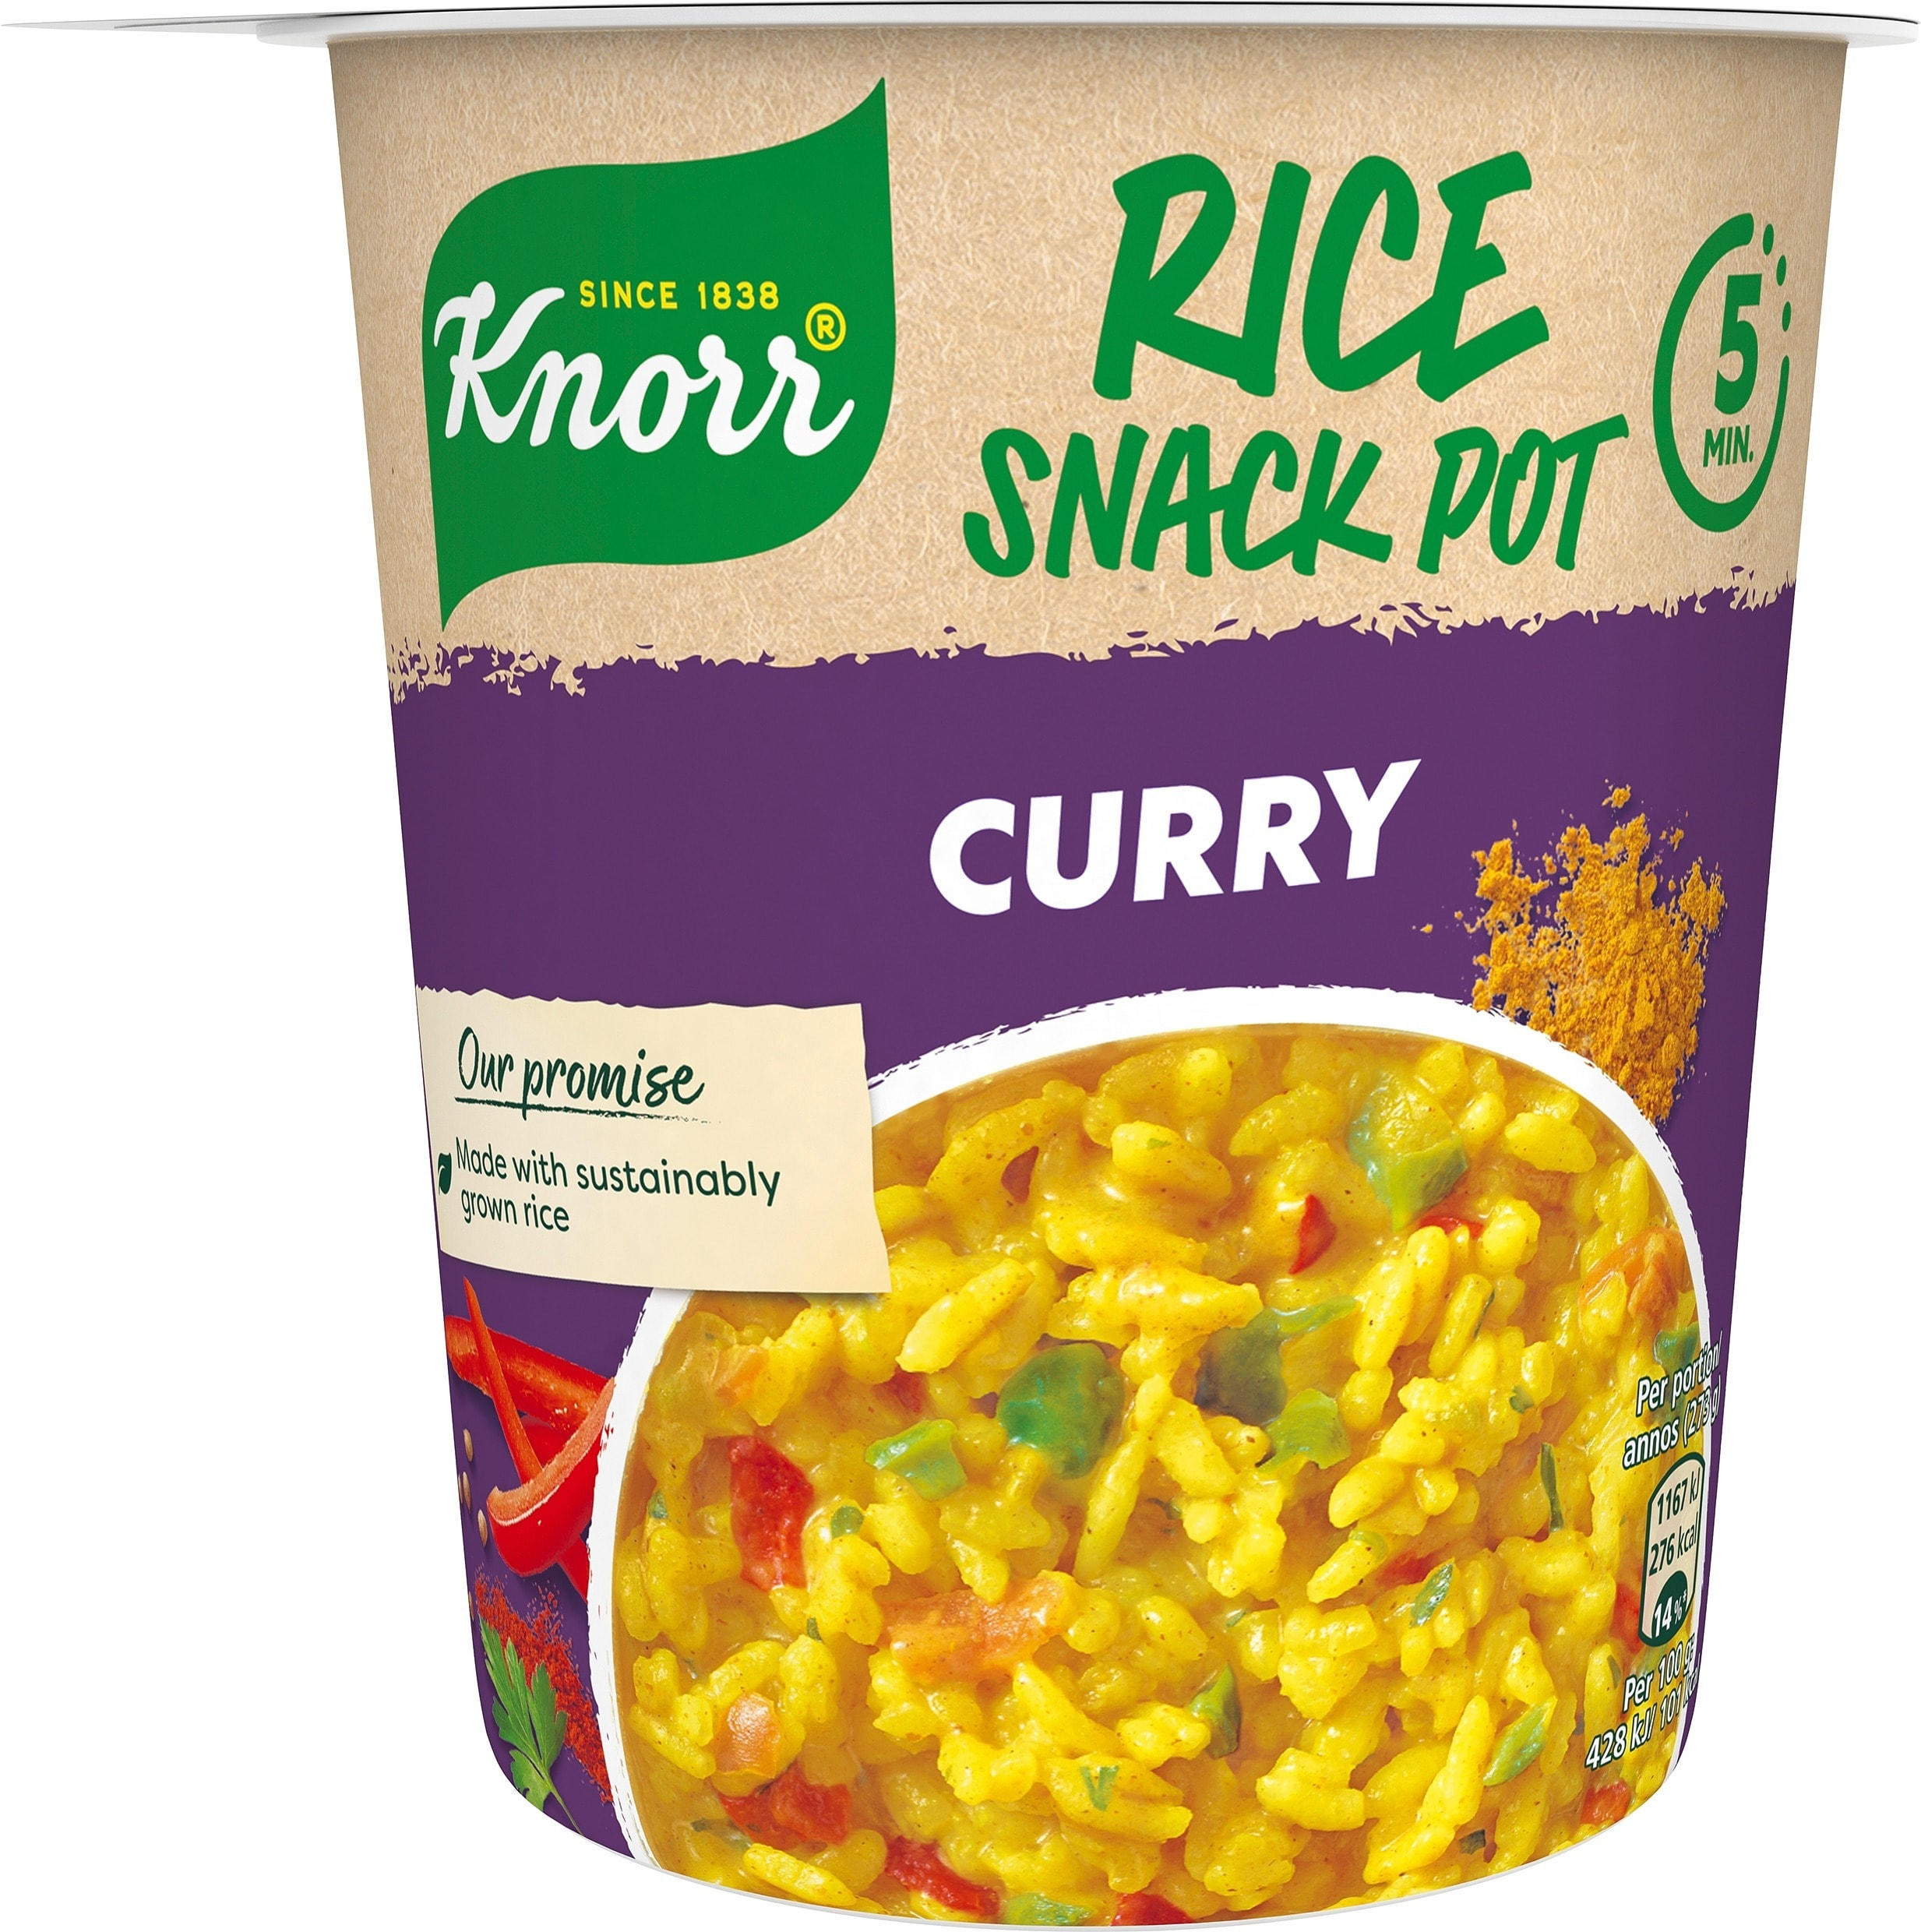 Snack Pot Rice Curry, 8 x 73 g -